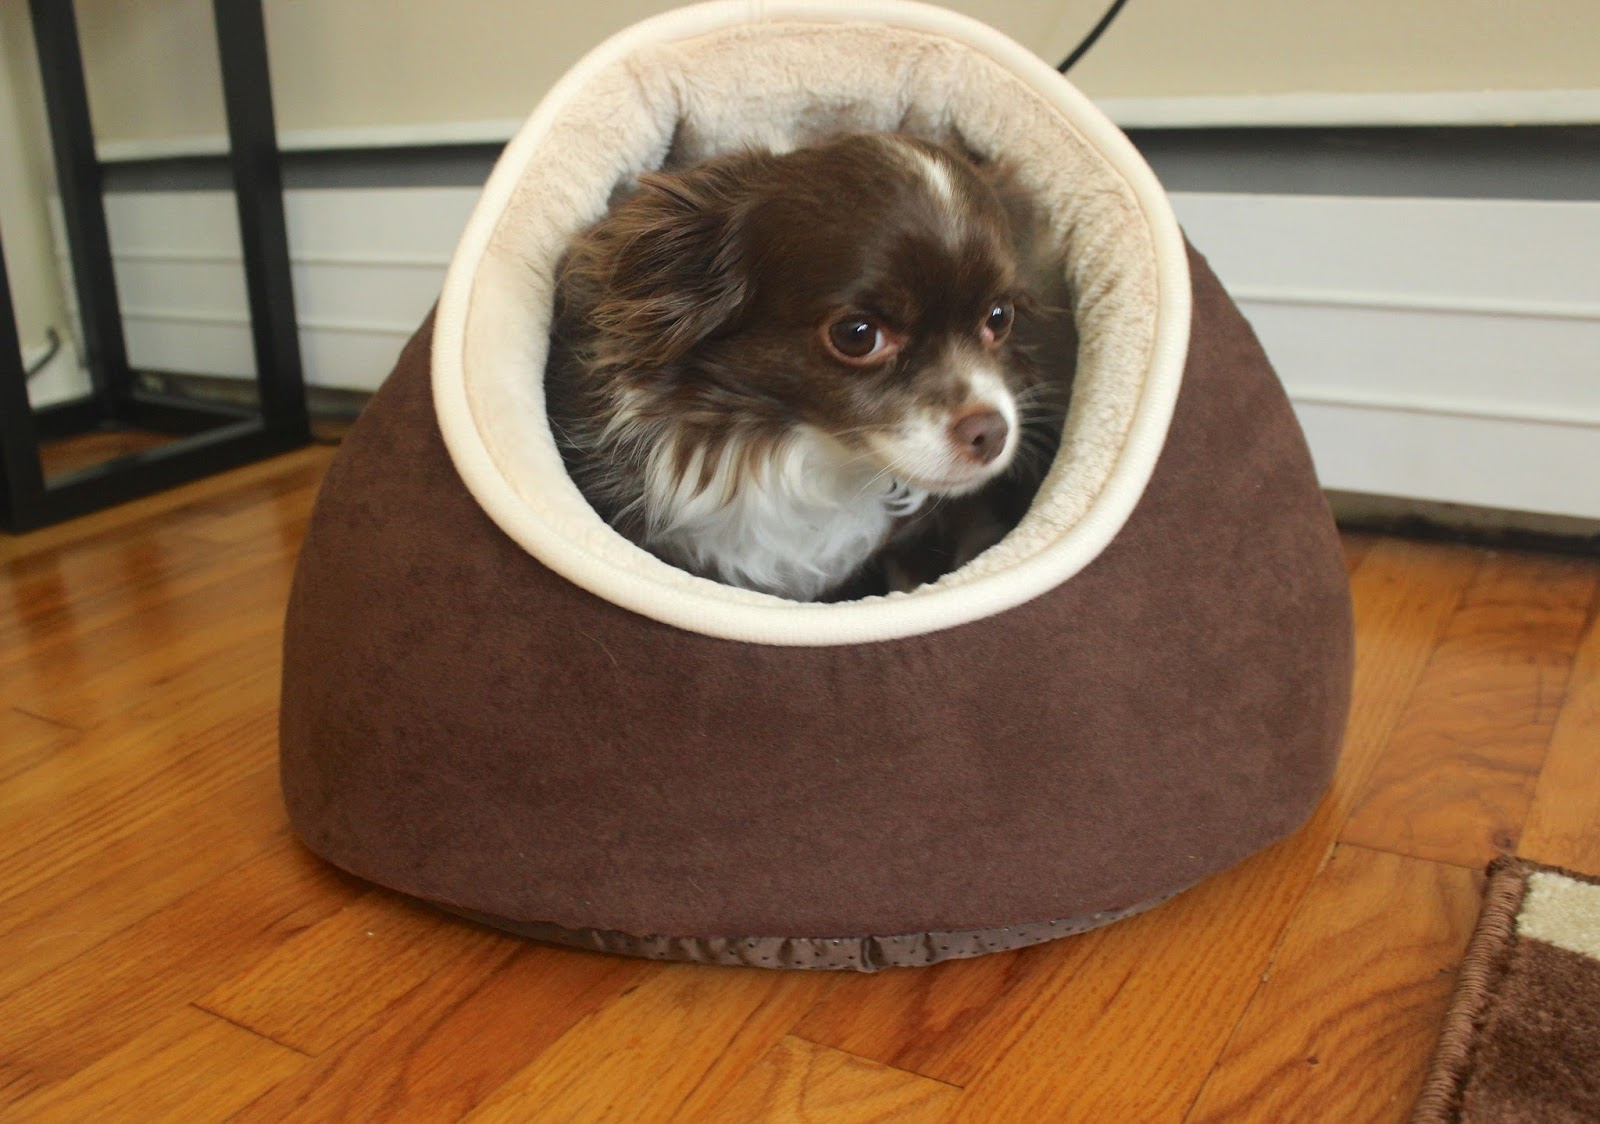 85 Cribs For Small Dogs 11 Luxury Dog Houses Worthy